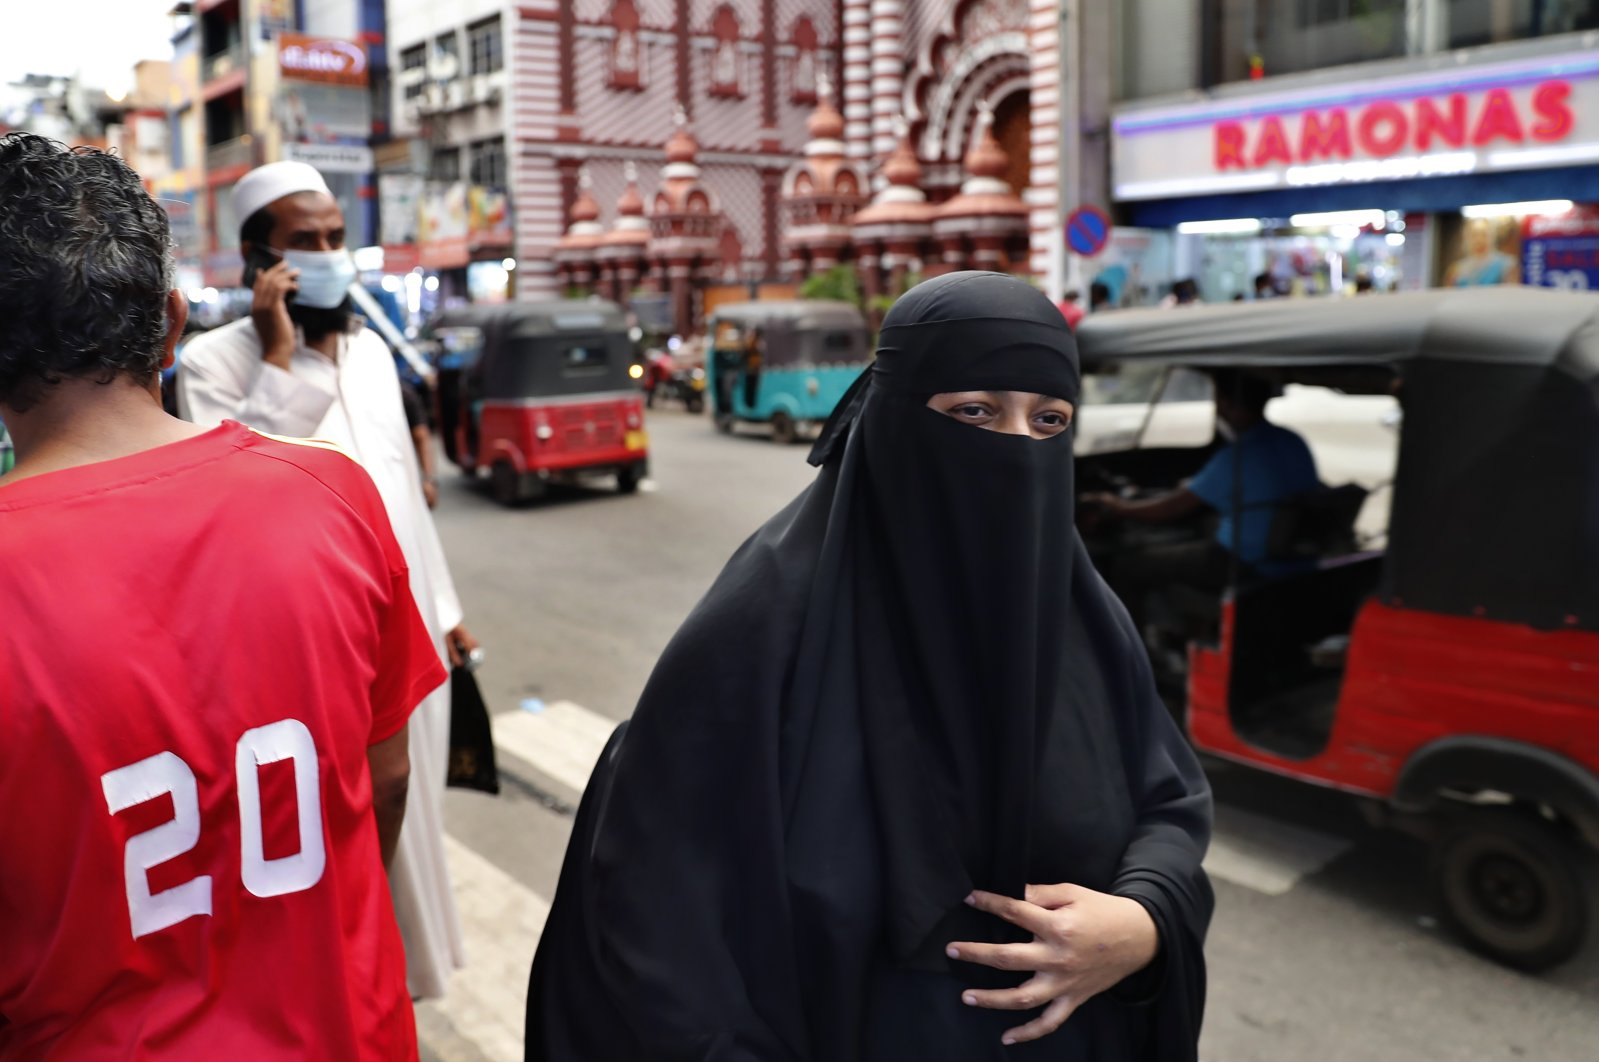 A burqa-clad Sri Lankan Muslim woman walks on the street of Colombo, Sri Lanka, Saturday, March 13, 2021. (AP Photo)